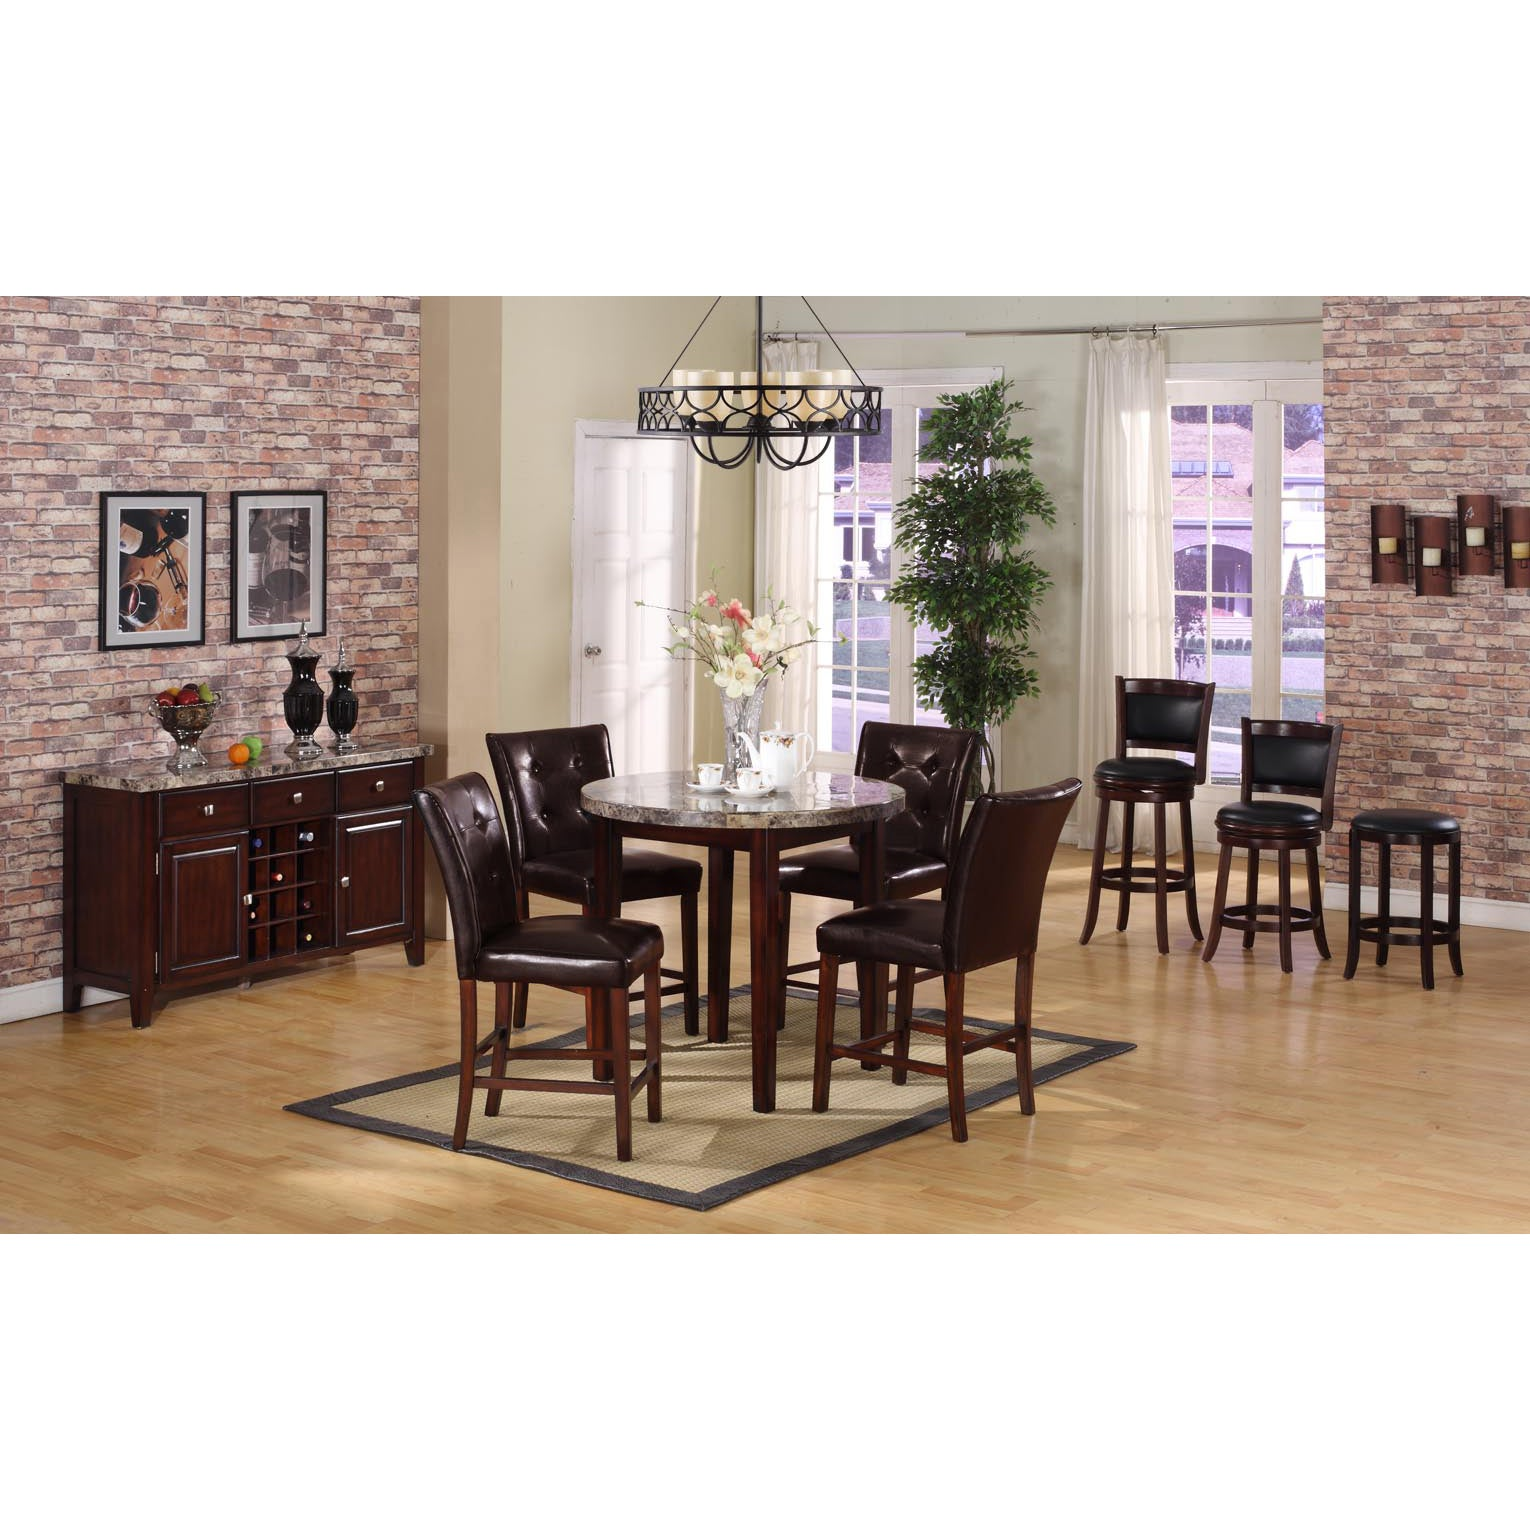 Radians Emperor Dark Faux-marble Table with Brown Barstools